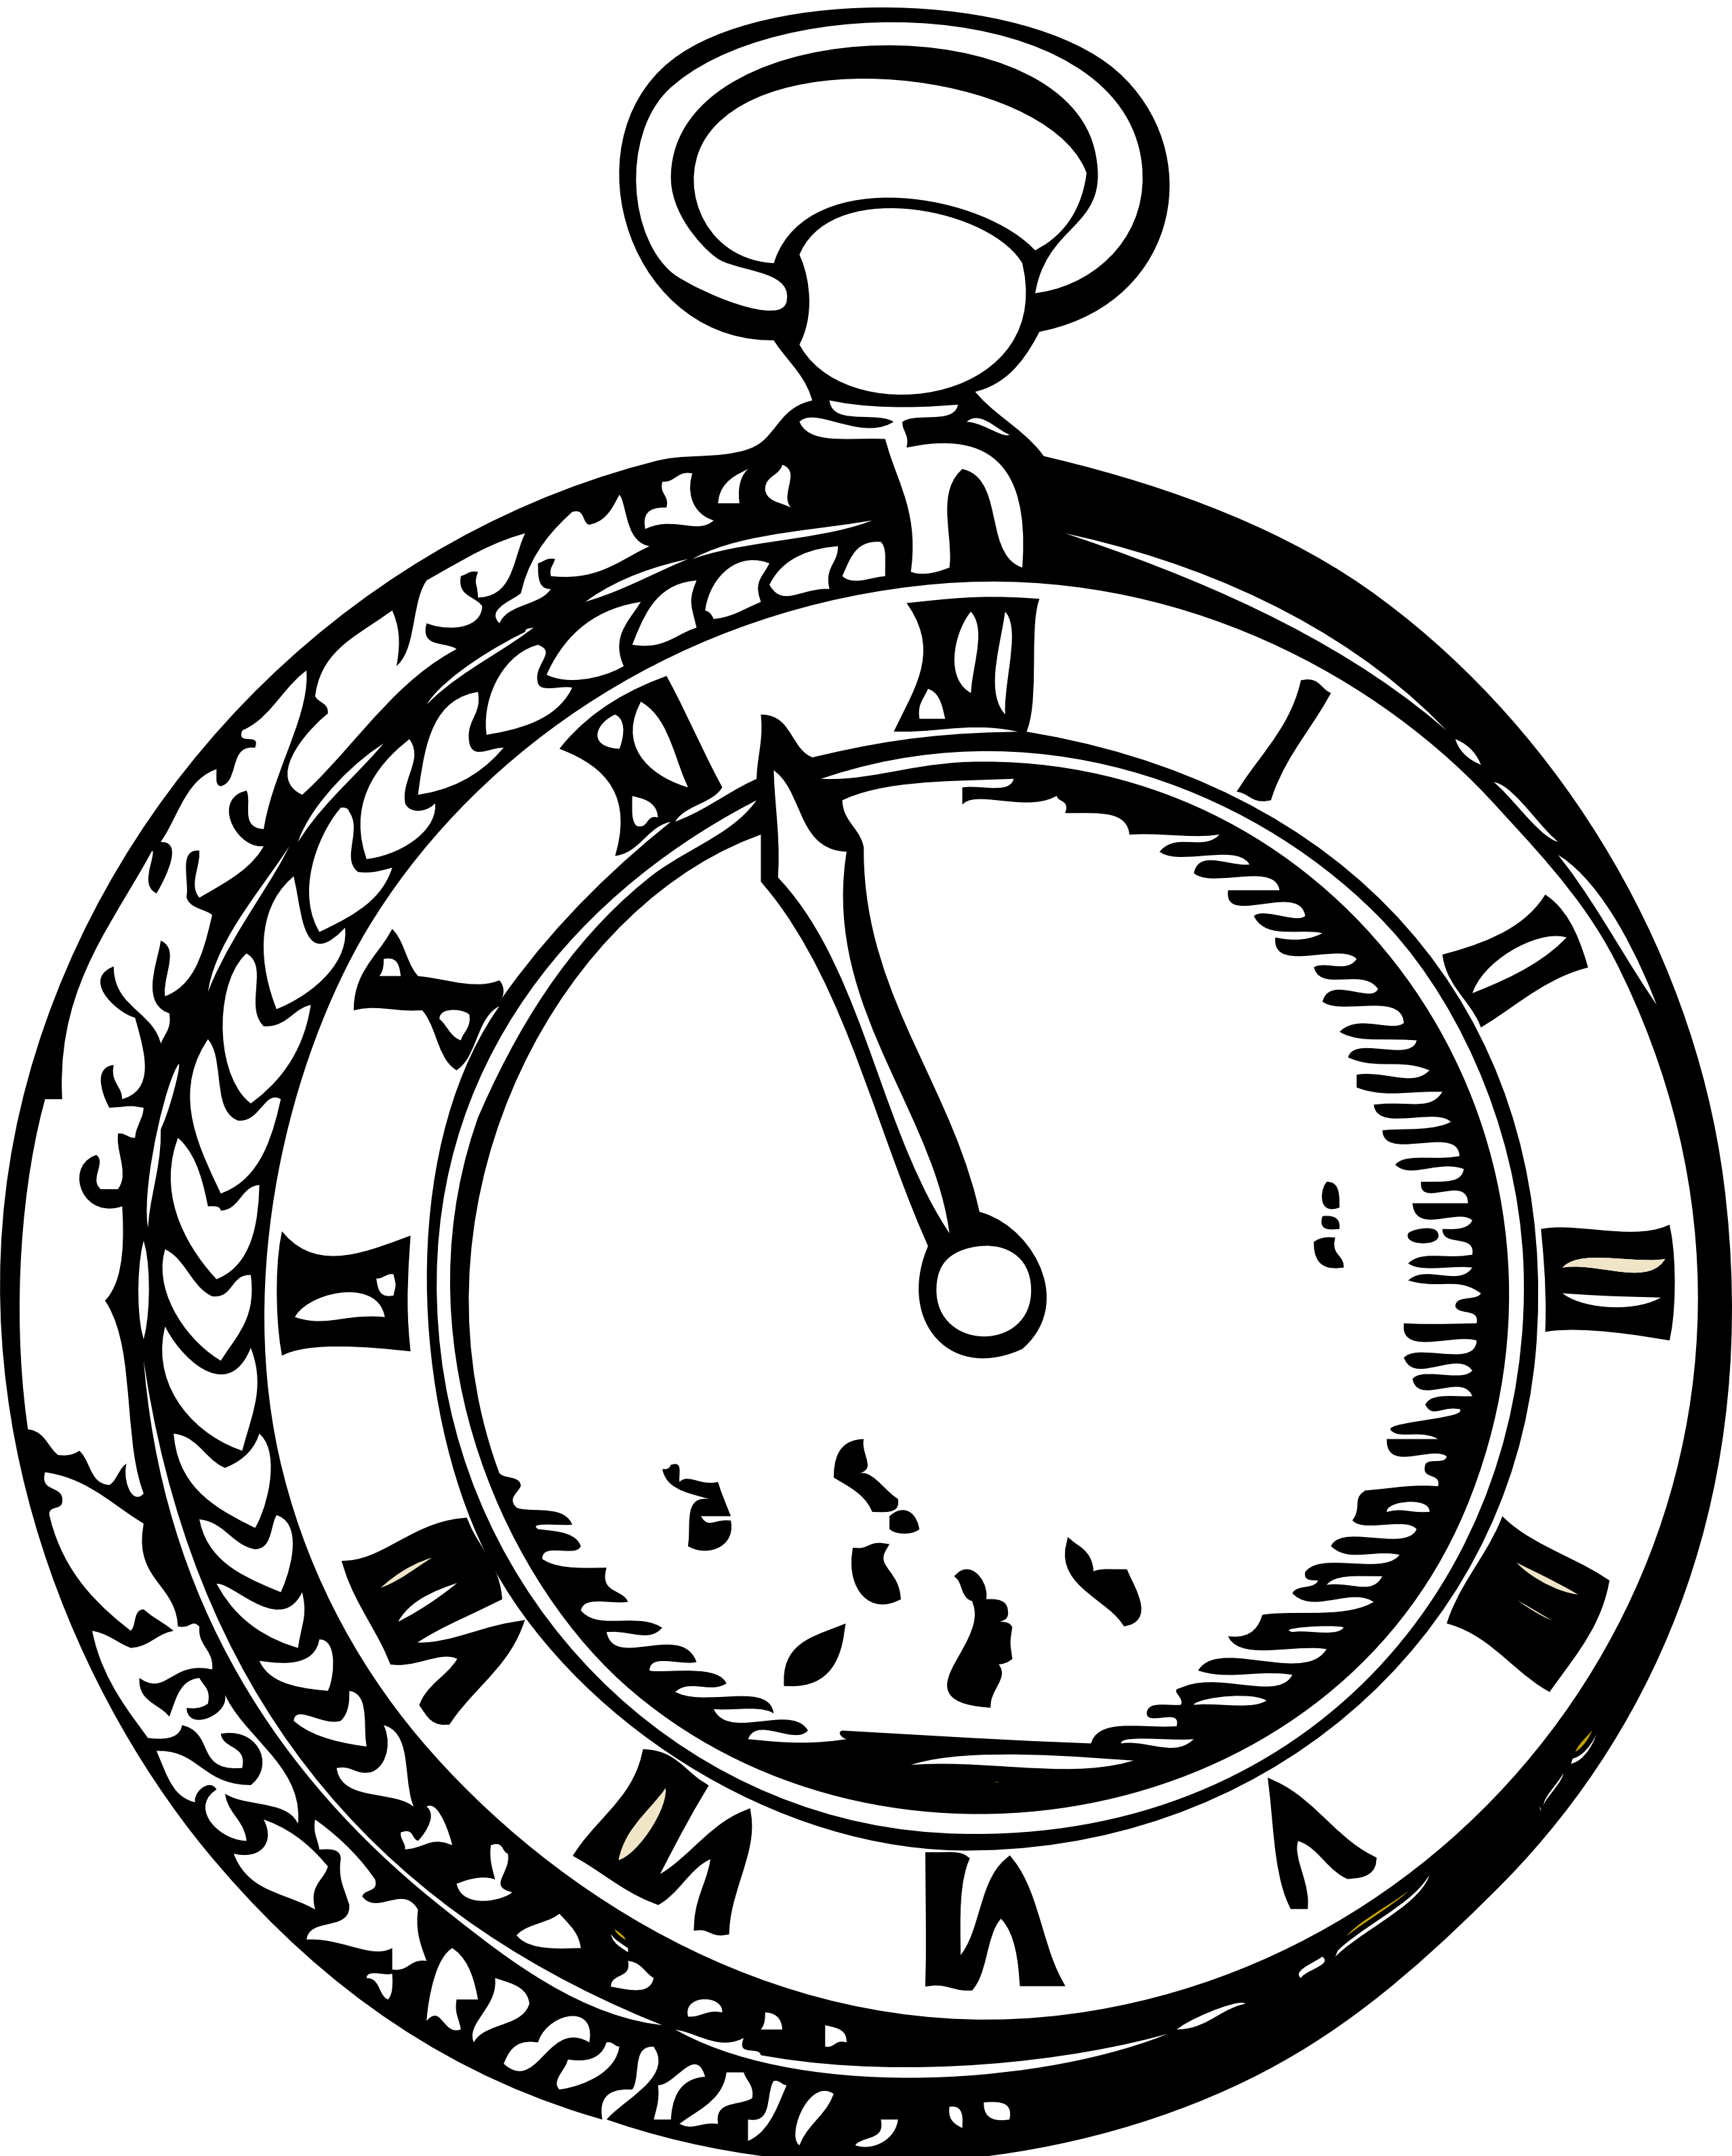 Pocket Watch Drawings: Pocket Watch Drawing